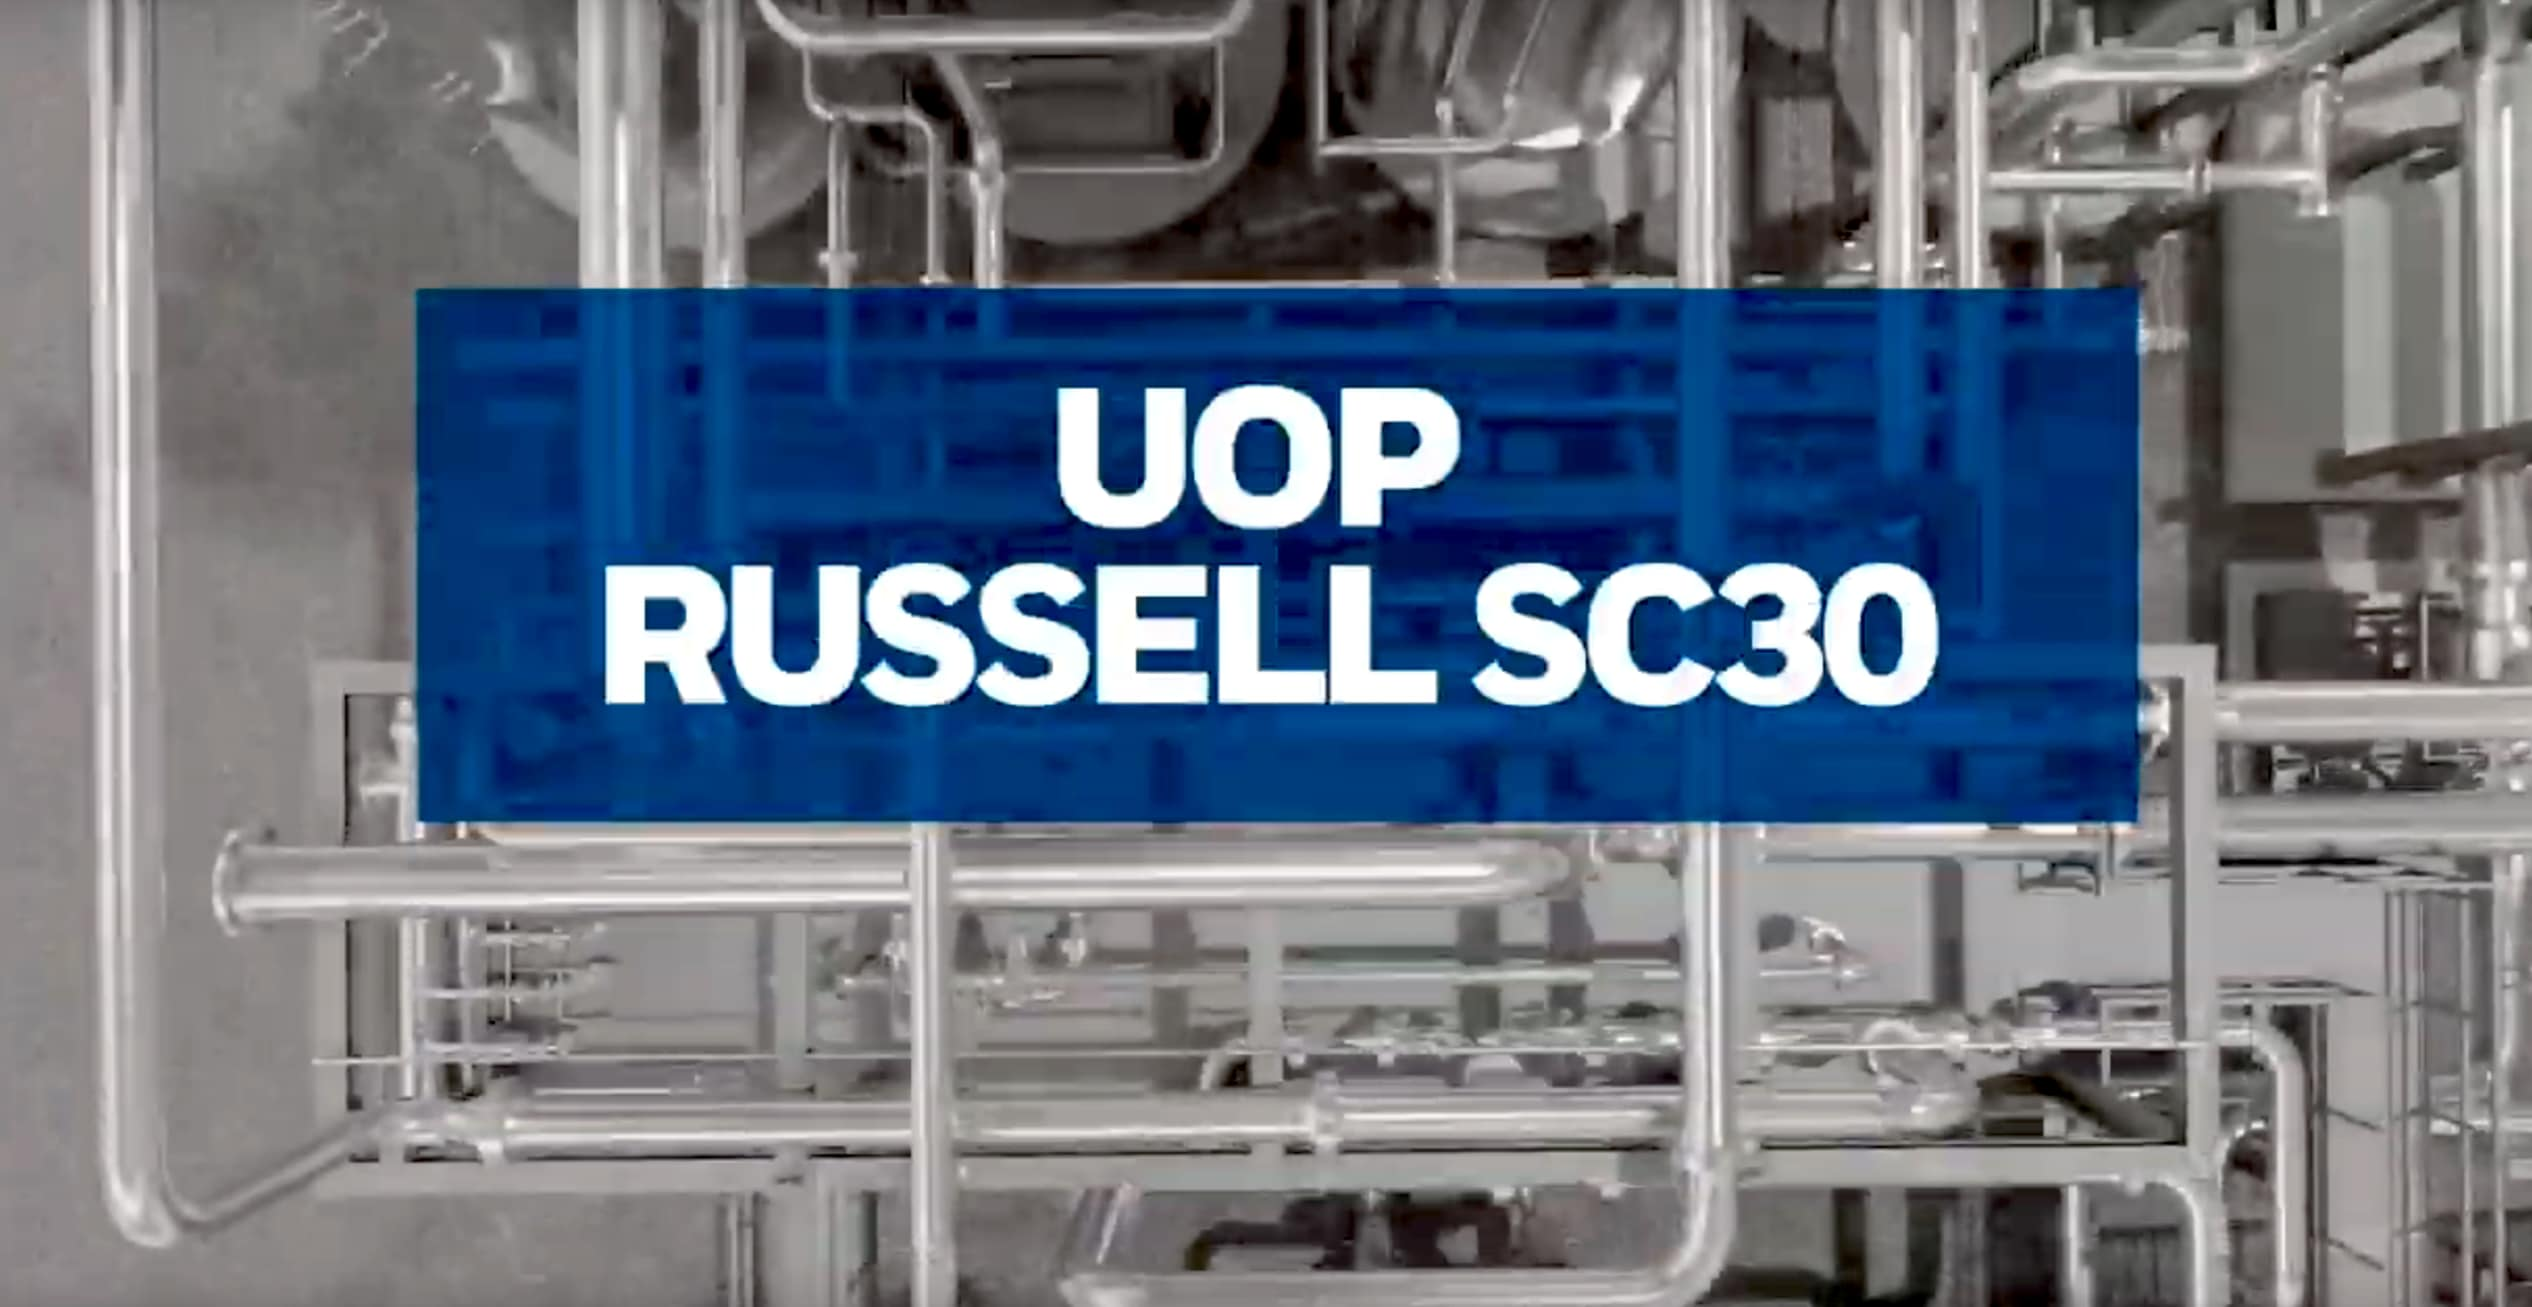 The UOP Russell SC30 from Honeywell is the first modular cryogenic gas plant capable of processing 300 cubic feet-per-day.